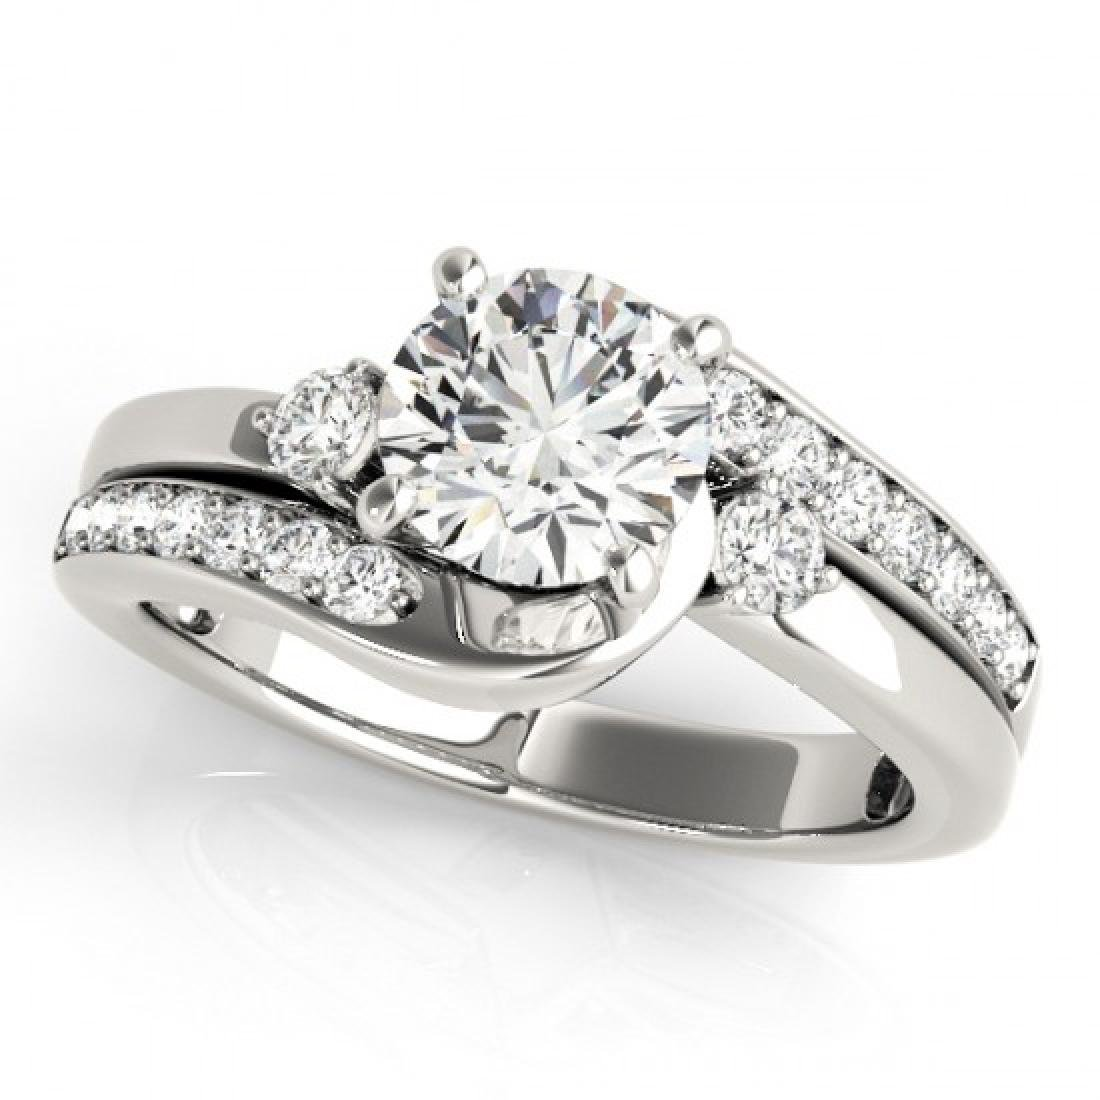 2 CTW Certified VS/SI Diamond Bypass Solitaire Ring 14K